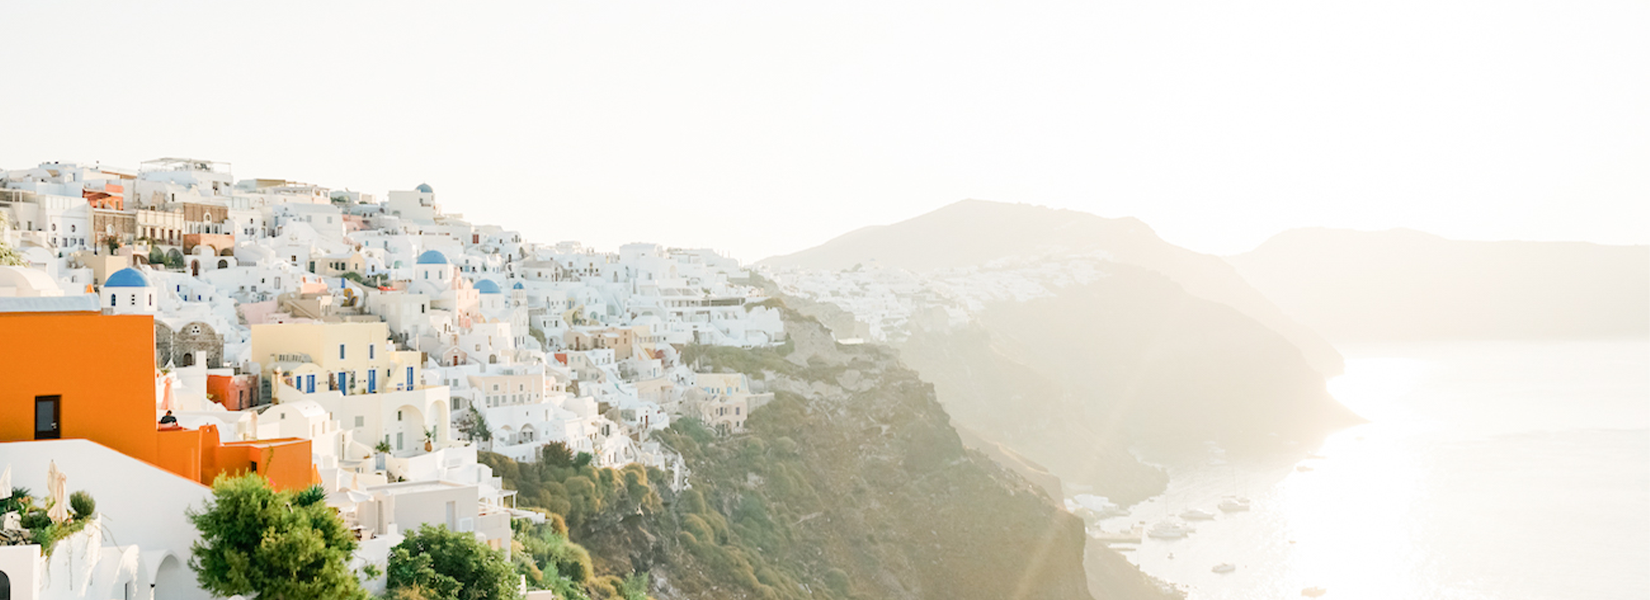 The Ultimate Travel Guide To Santorini: Where To Stay and What To Do